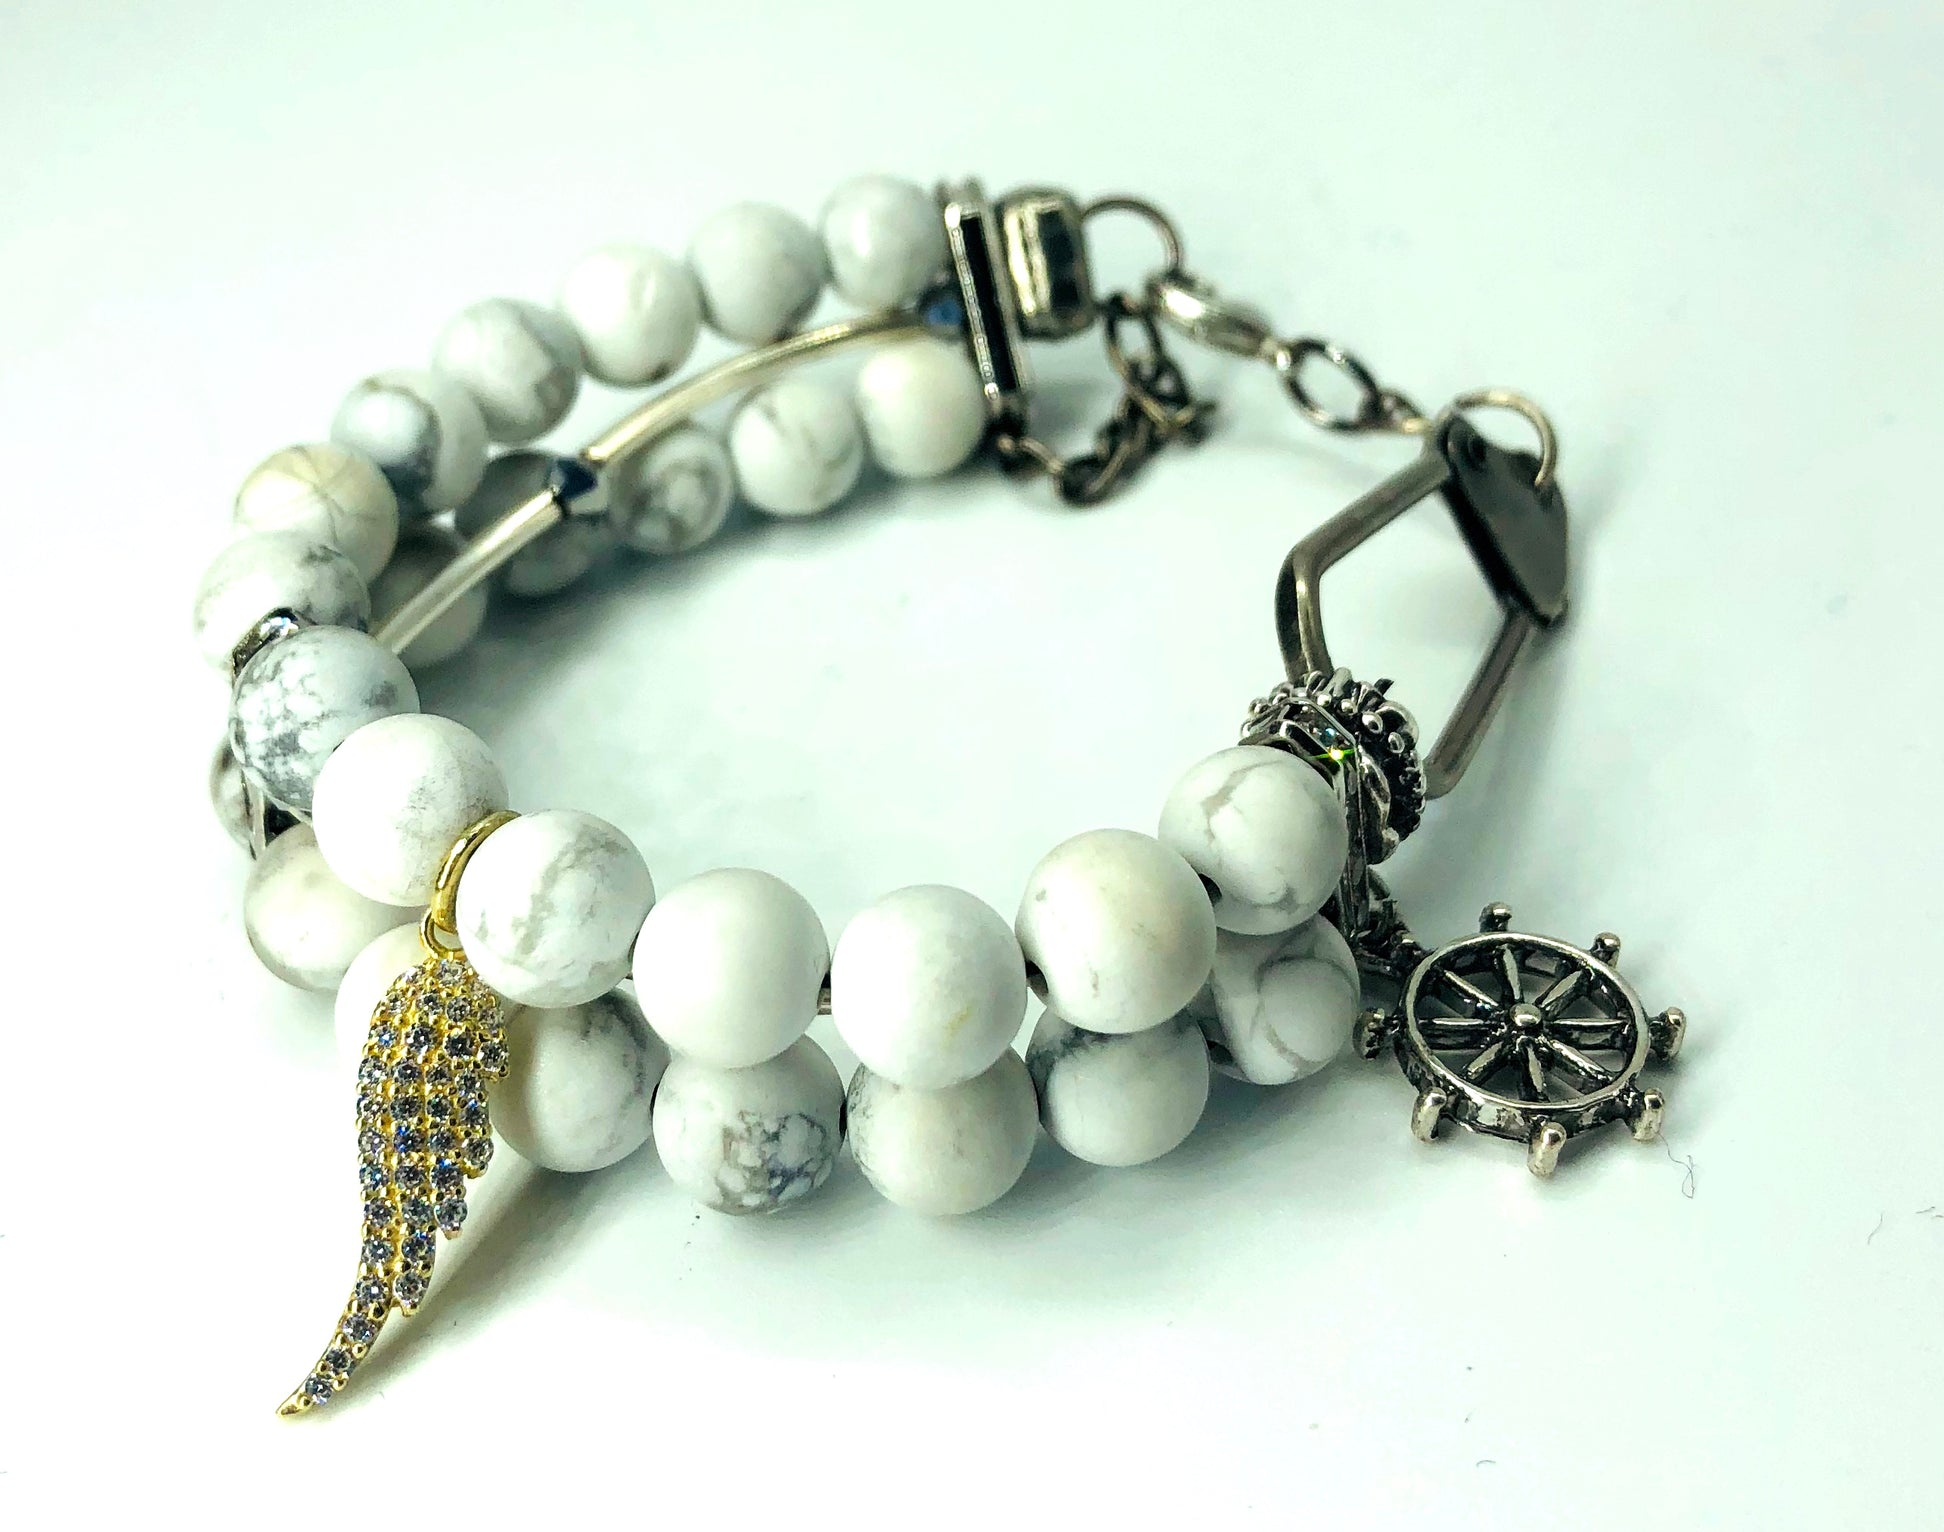 white stone accesosorie for hand